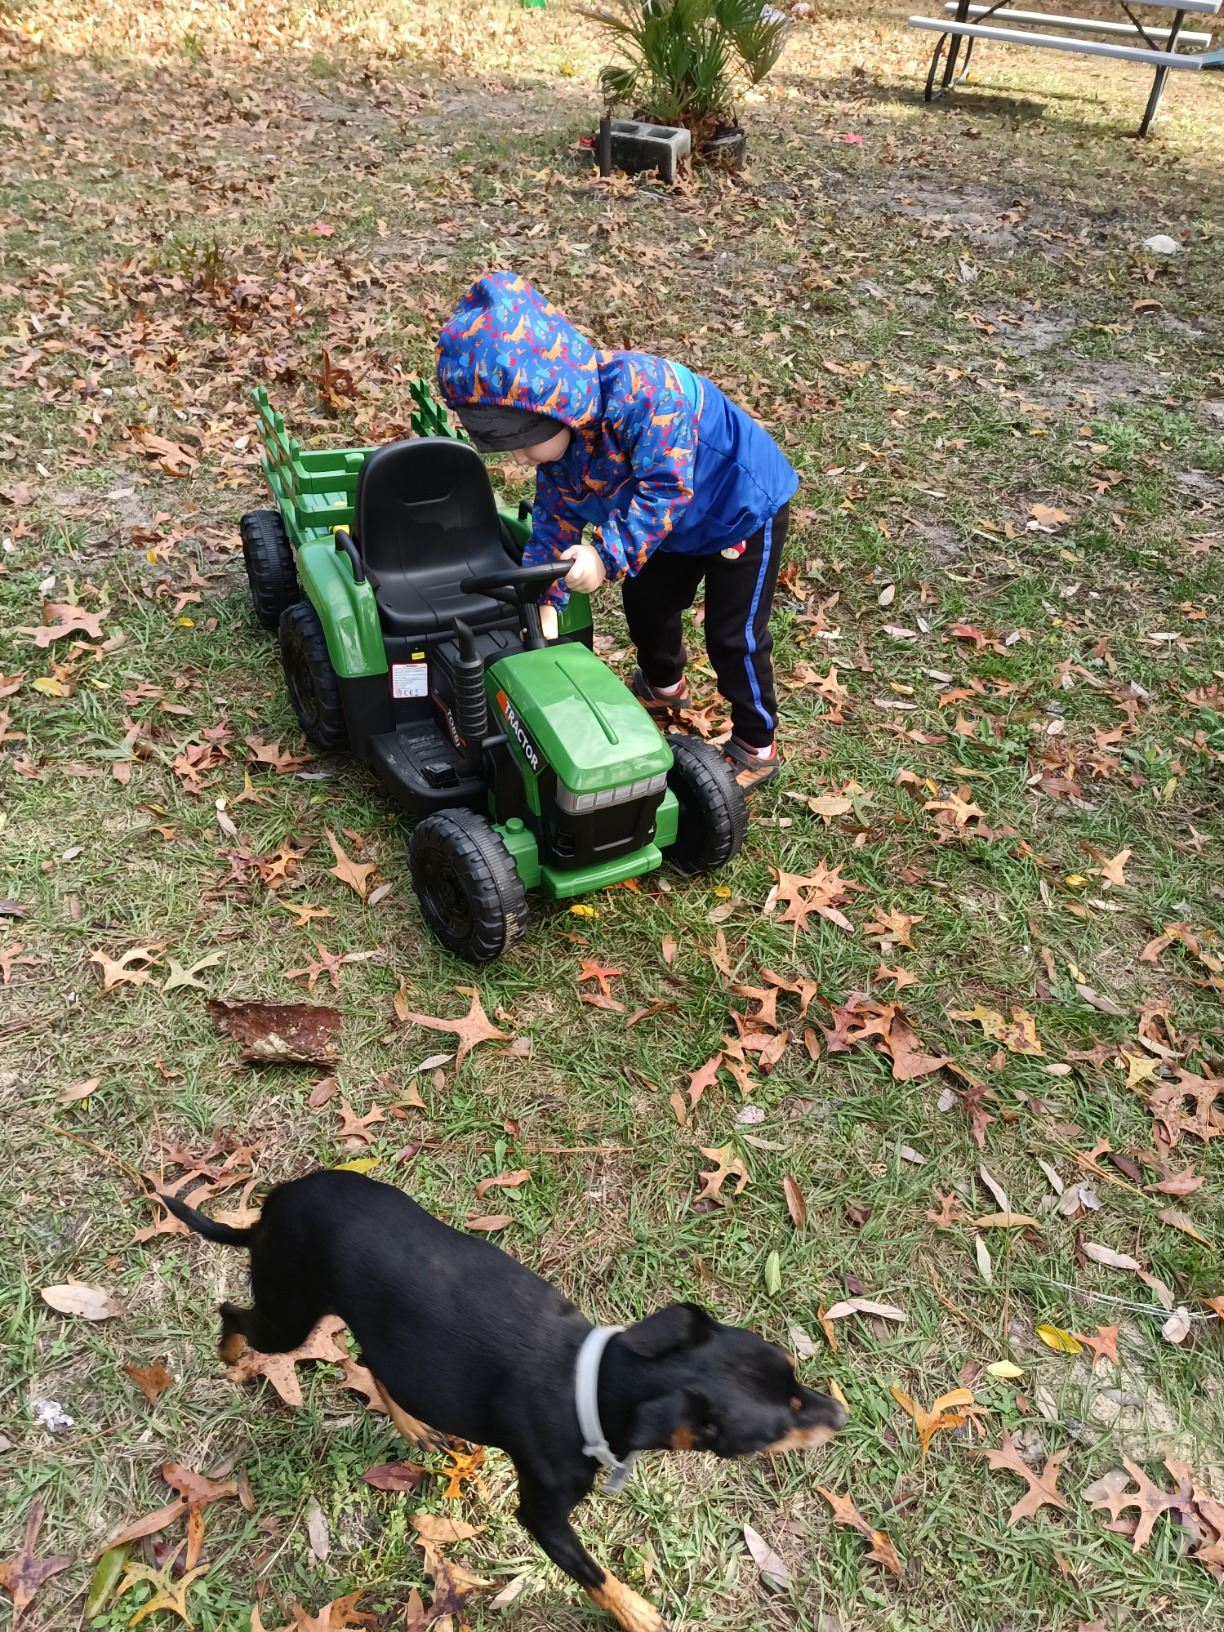 12V Electric Kids Ride-On Tractor with Trailer, Dark Green photo review